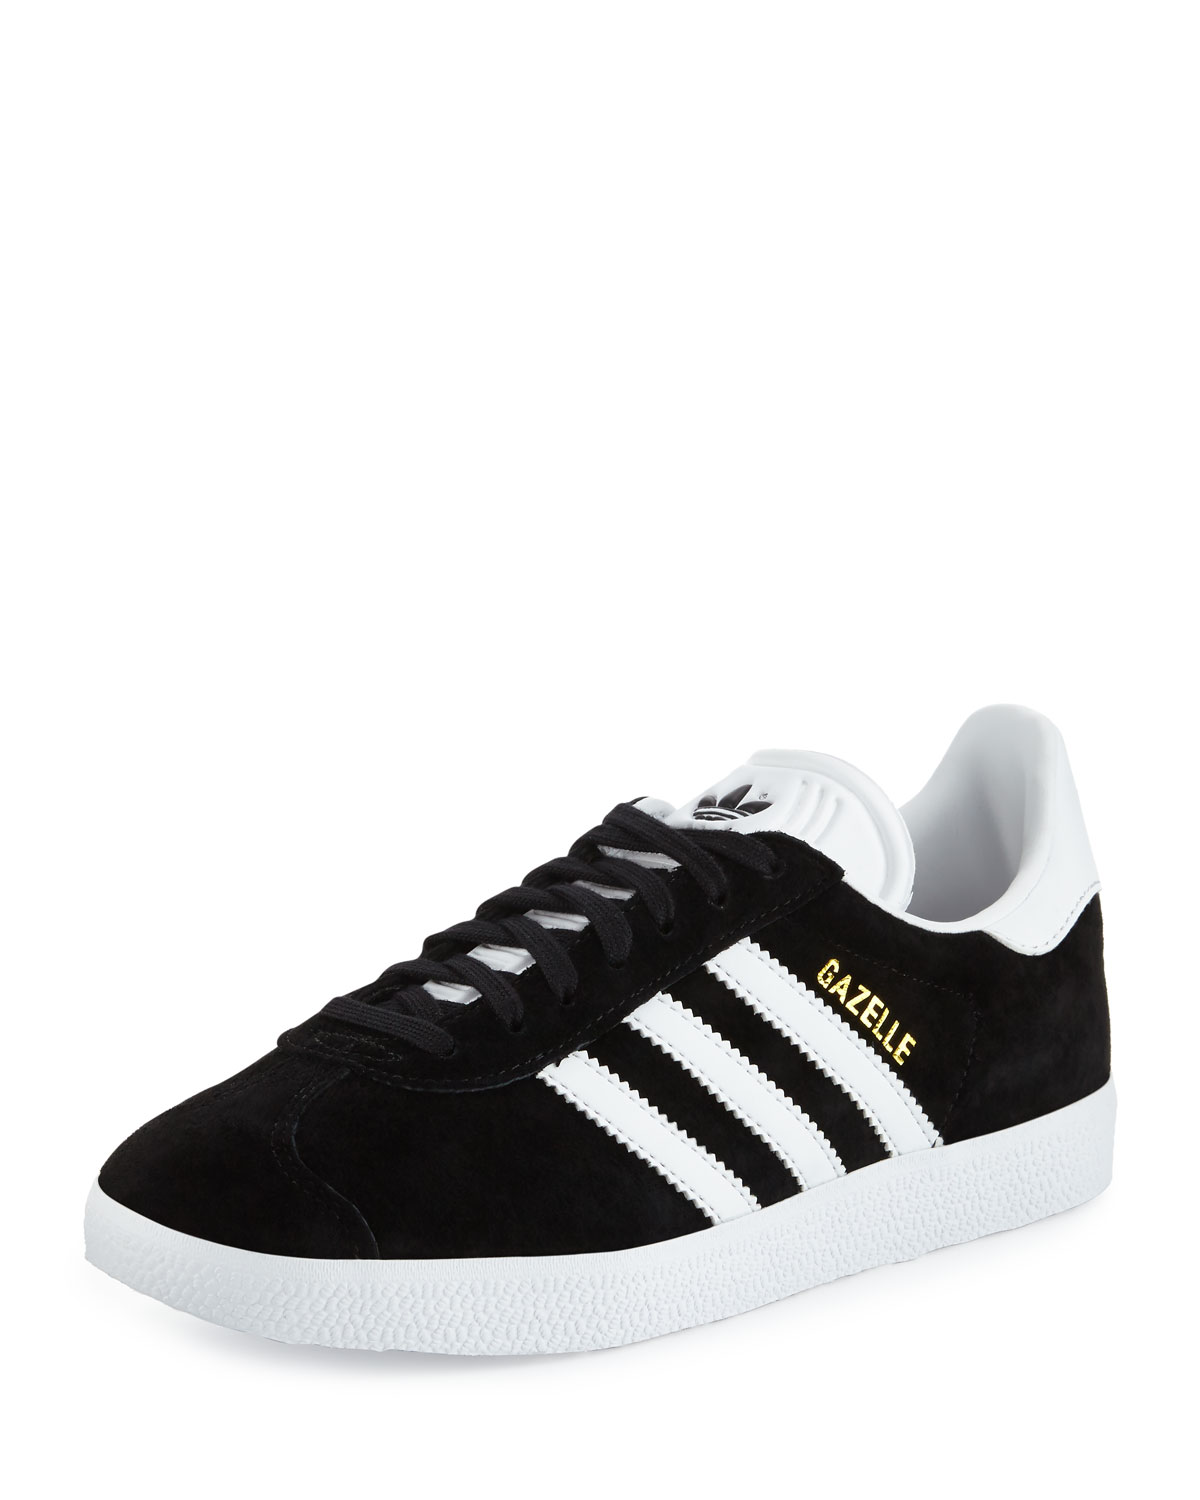 watch 8b1c5 91749 AdidasGazelle Original Suede Sneakers, BlackWhite